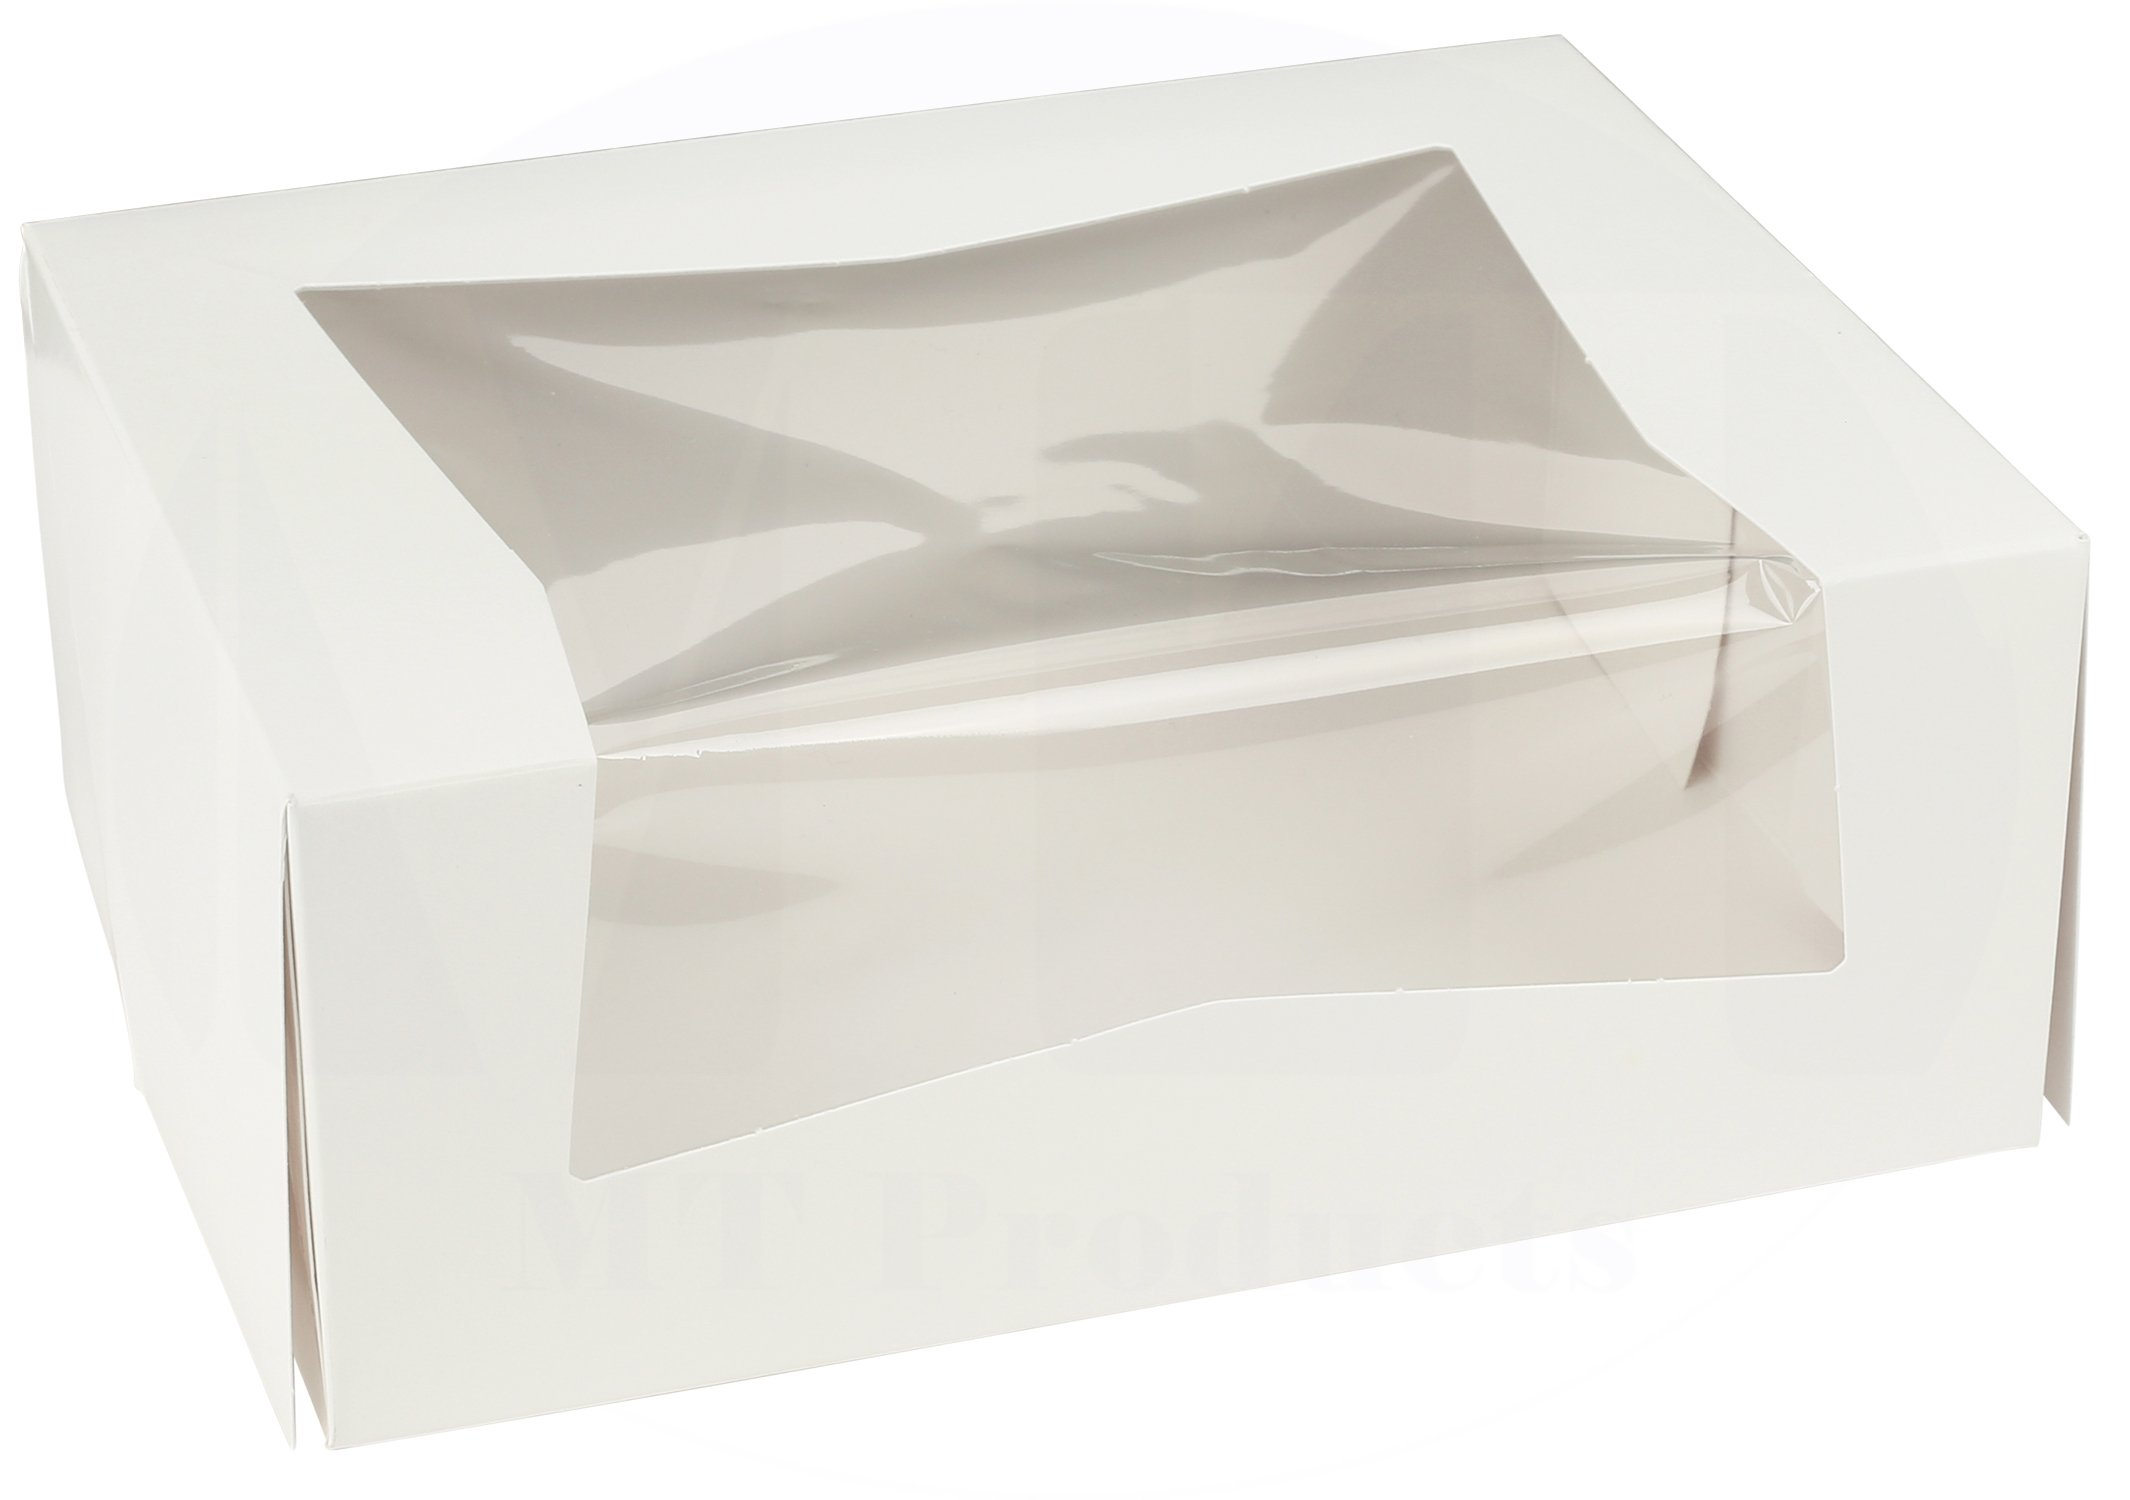 9'' Length x 7'' Width x 3.5'' Height Kraft Paperboard Auto-Popup Window Bakery Box by MT Products (Pack of 15)